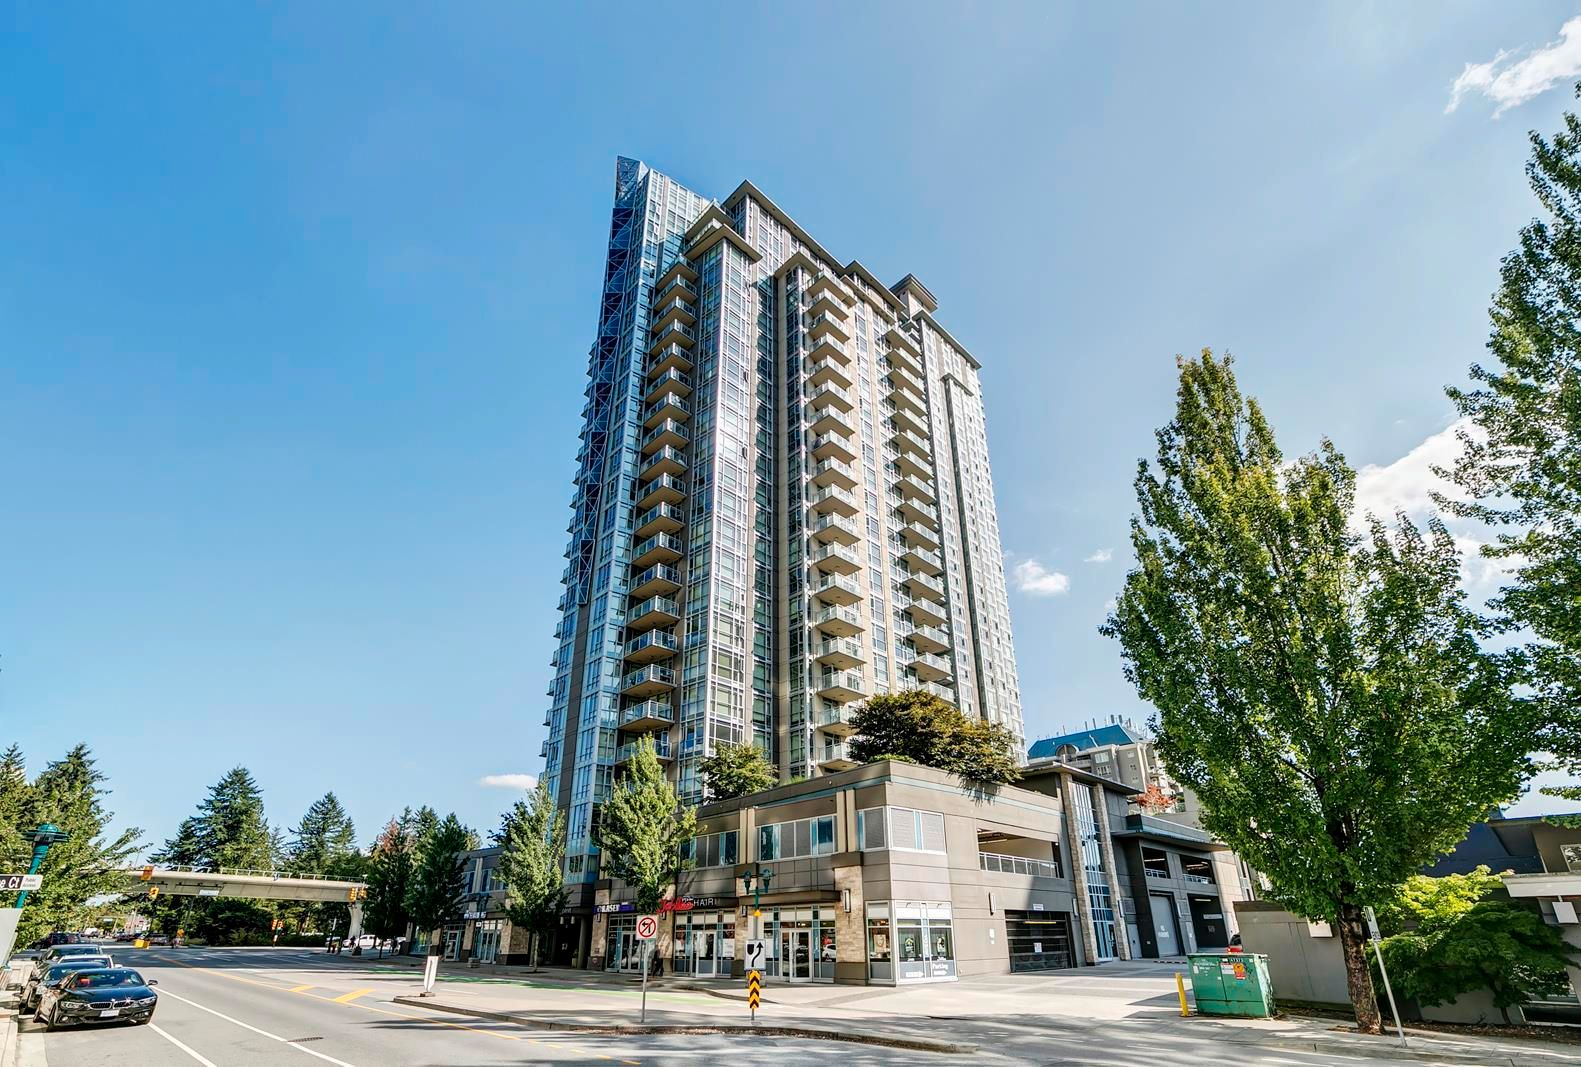 """Main Photo: 1603 3008 GLEN Drive in Coquitlam: North Coquitlam Condo for sale in """"M2 by Cressey"""" : MLS®# R2601038"""